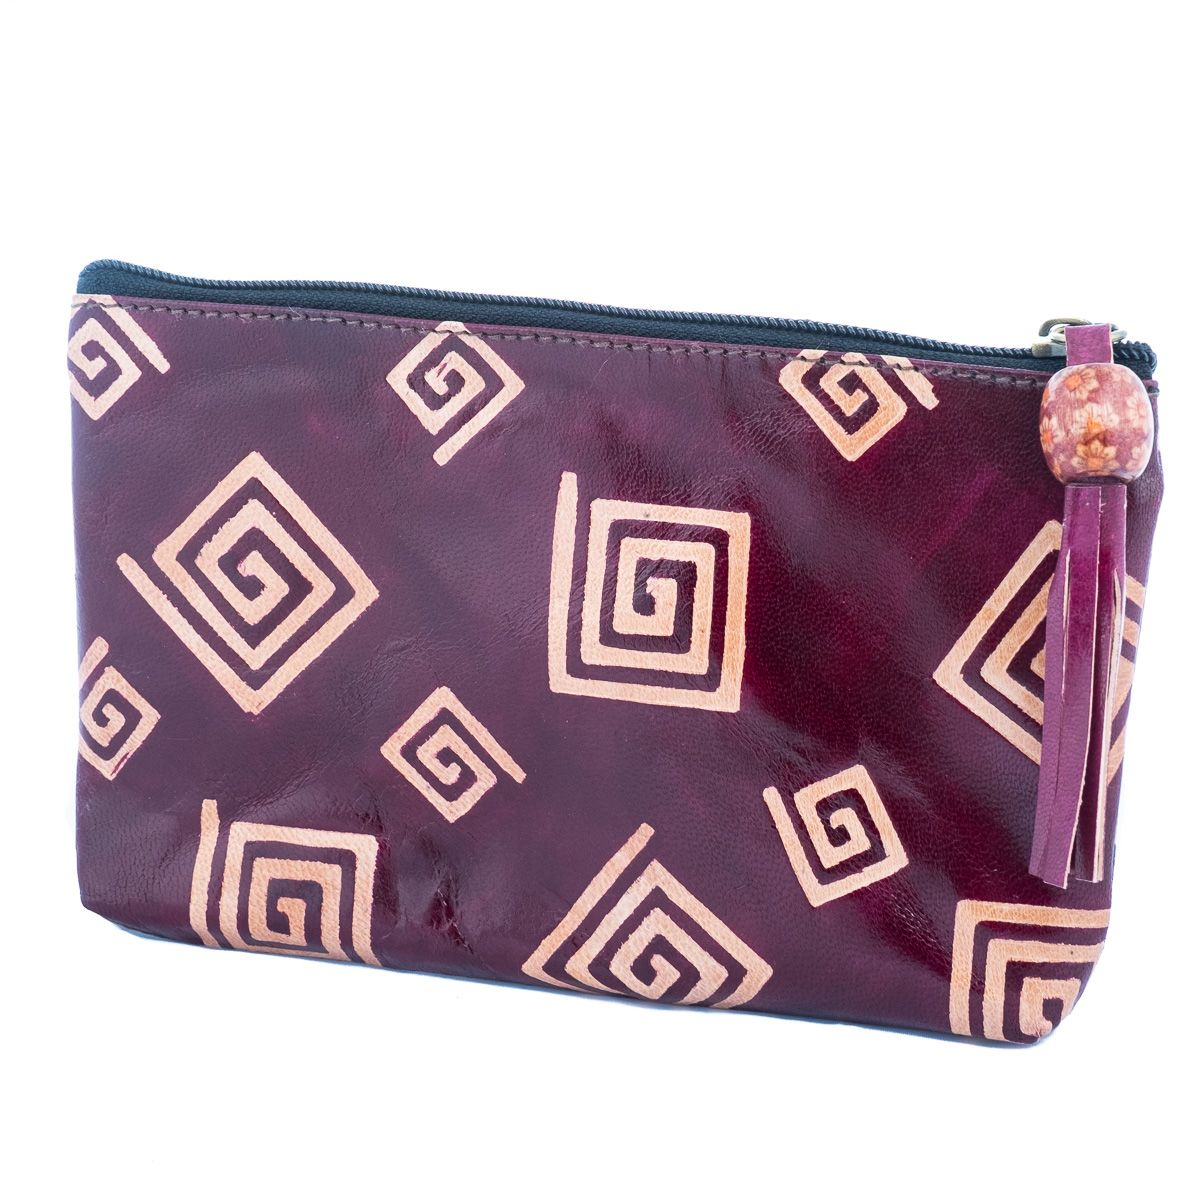 Leather wallet Square spiral